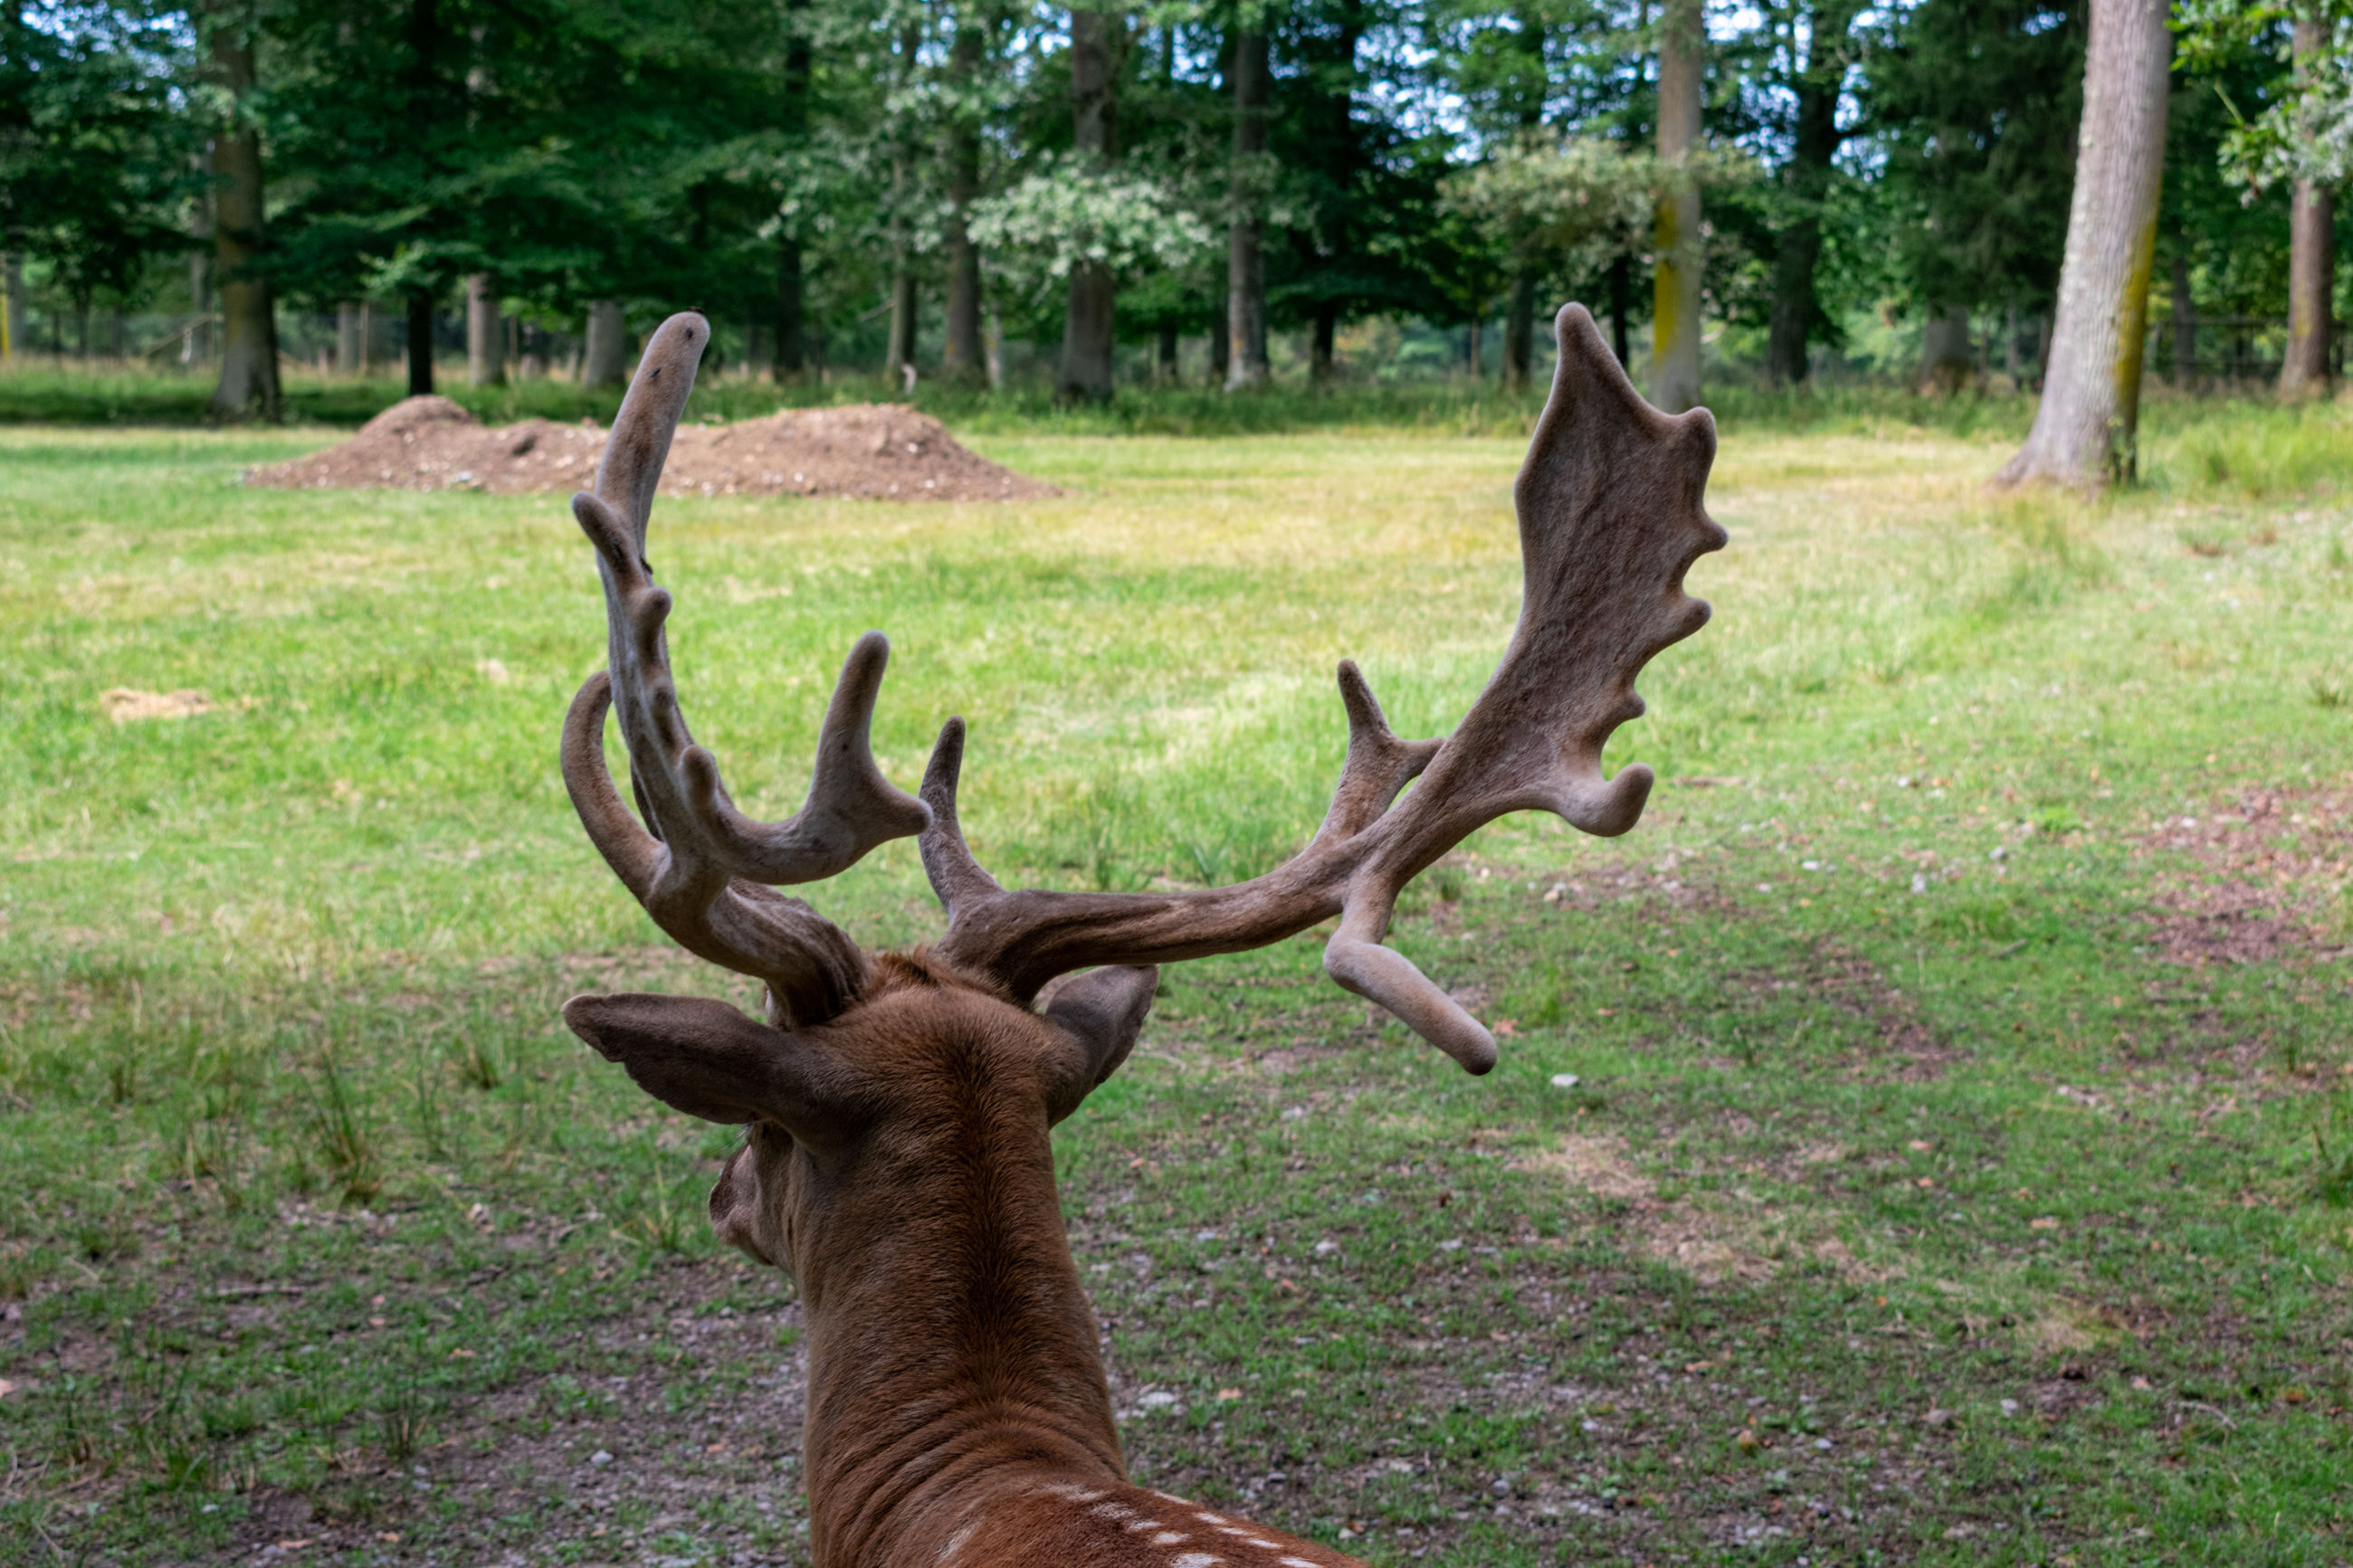 tree, plant, animal themes, animal wildlife, animal, antler, mammal, one animal, animals in the wild, deer, land, nature, day, no people, male animal, forest, grass, green color, animal body part, herbivorous, outdoors, animal head